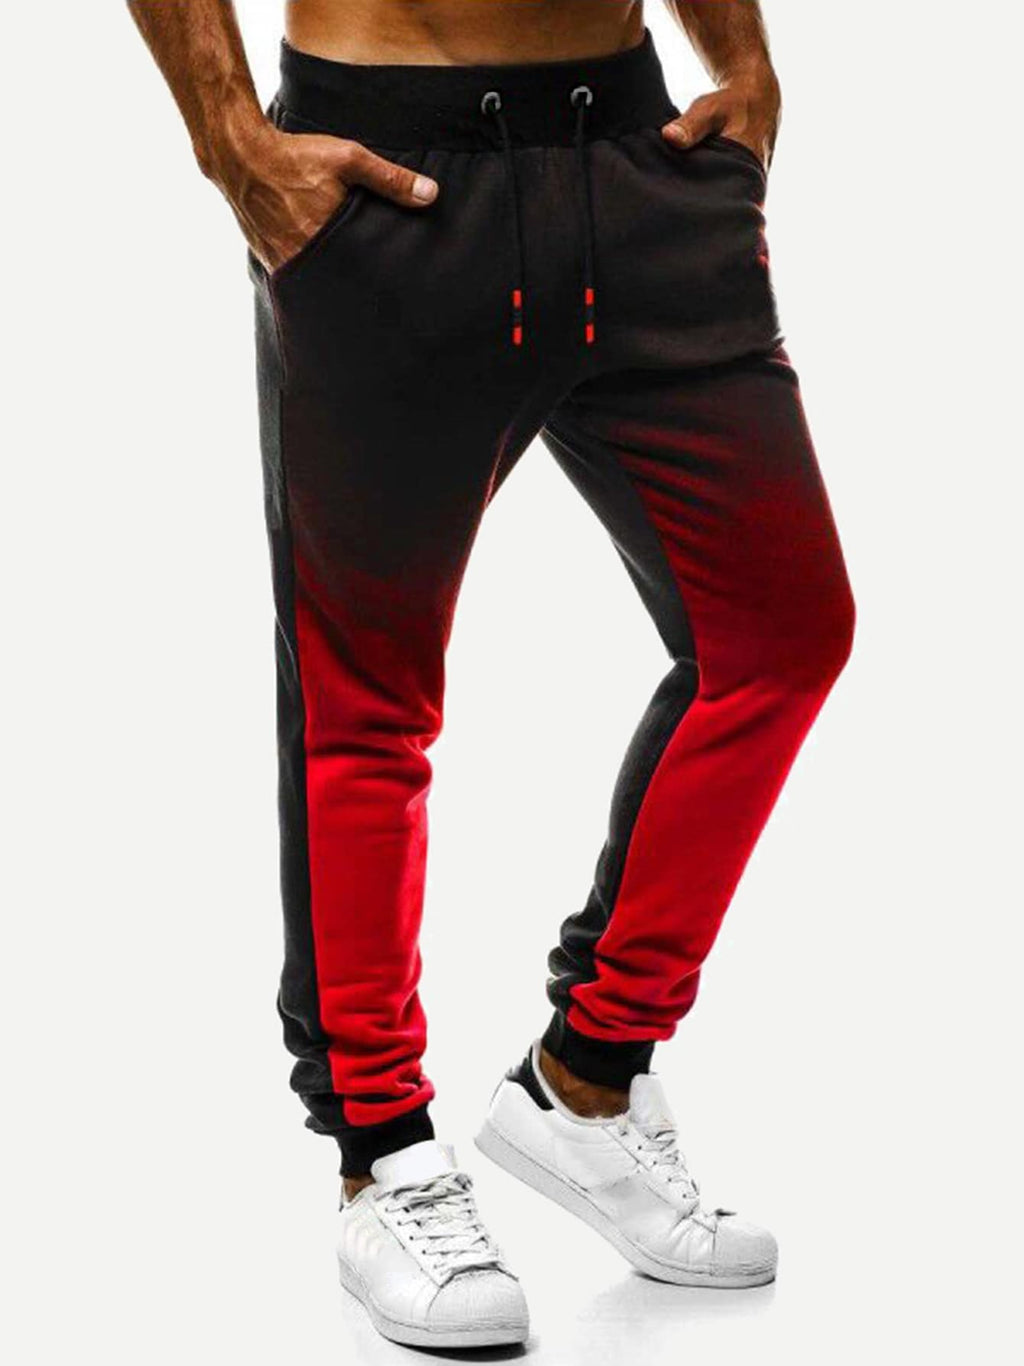 Men's Activewear Pants - Ombre Drawstring Waist Pants